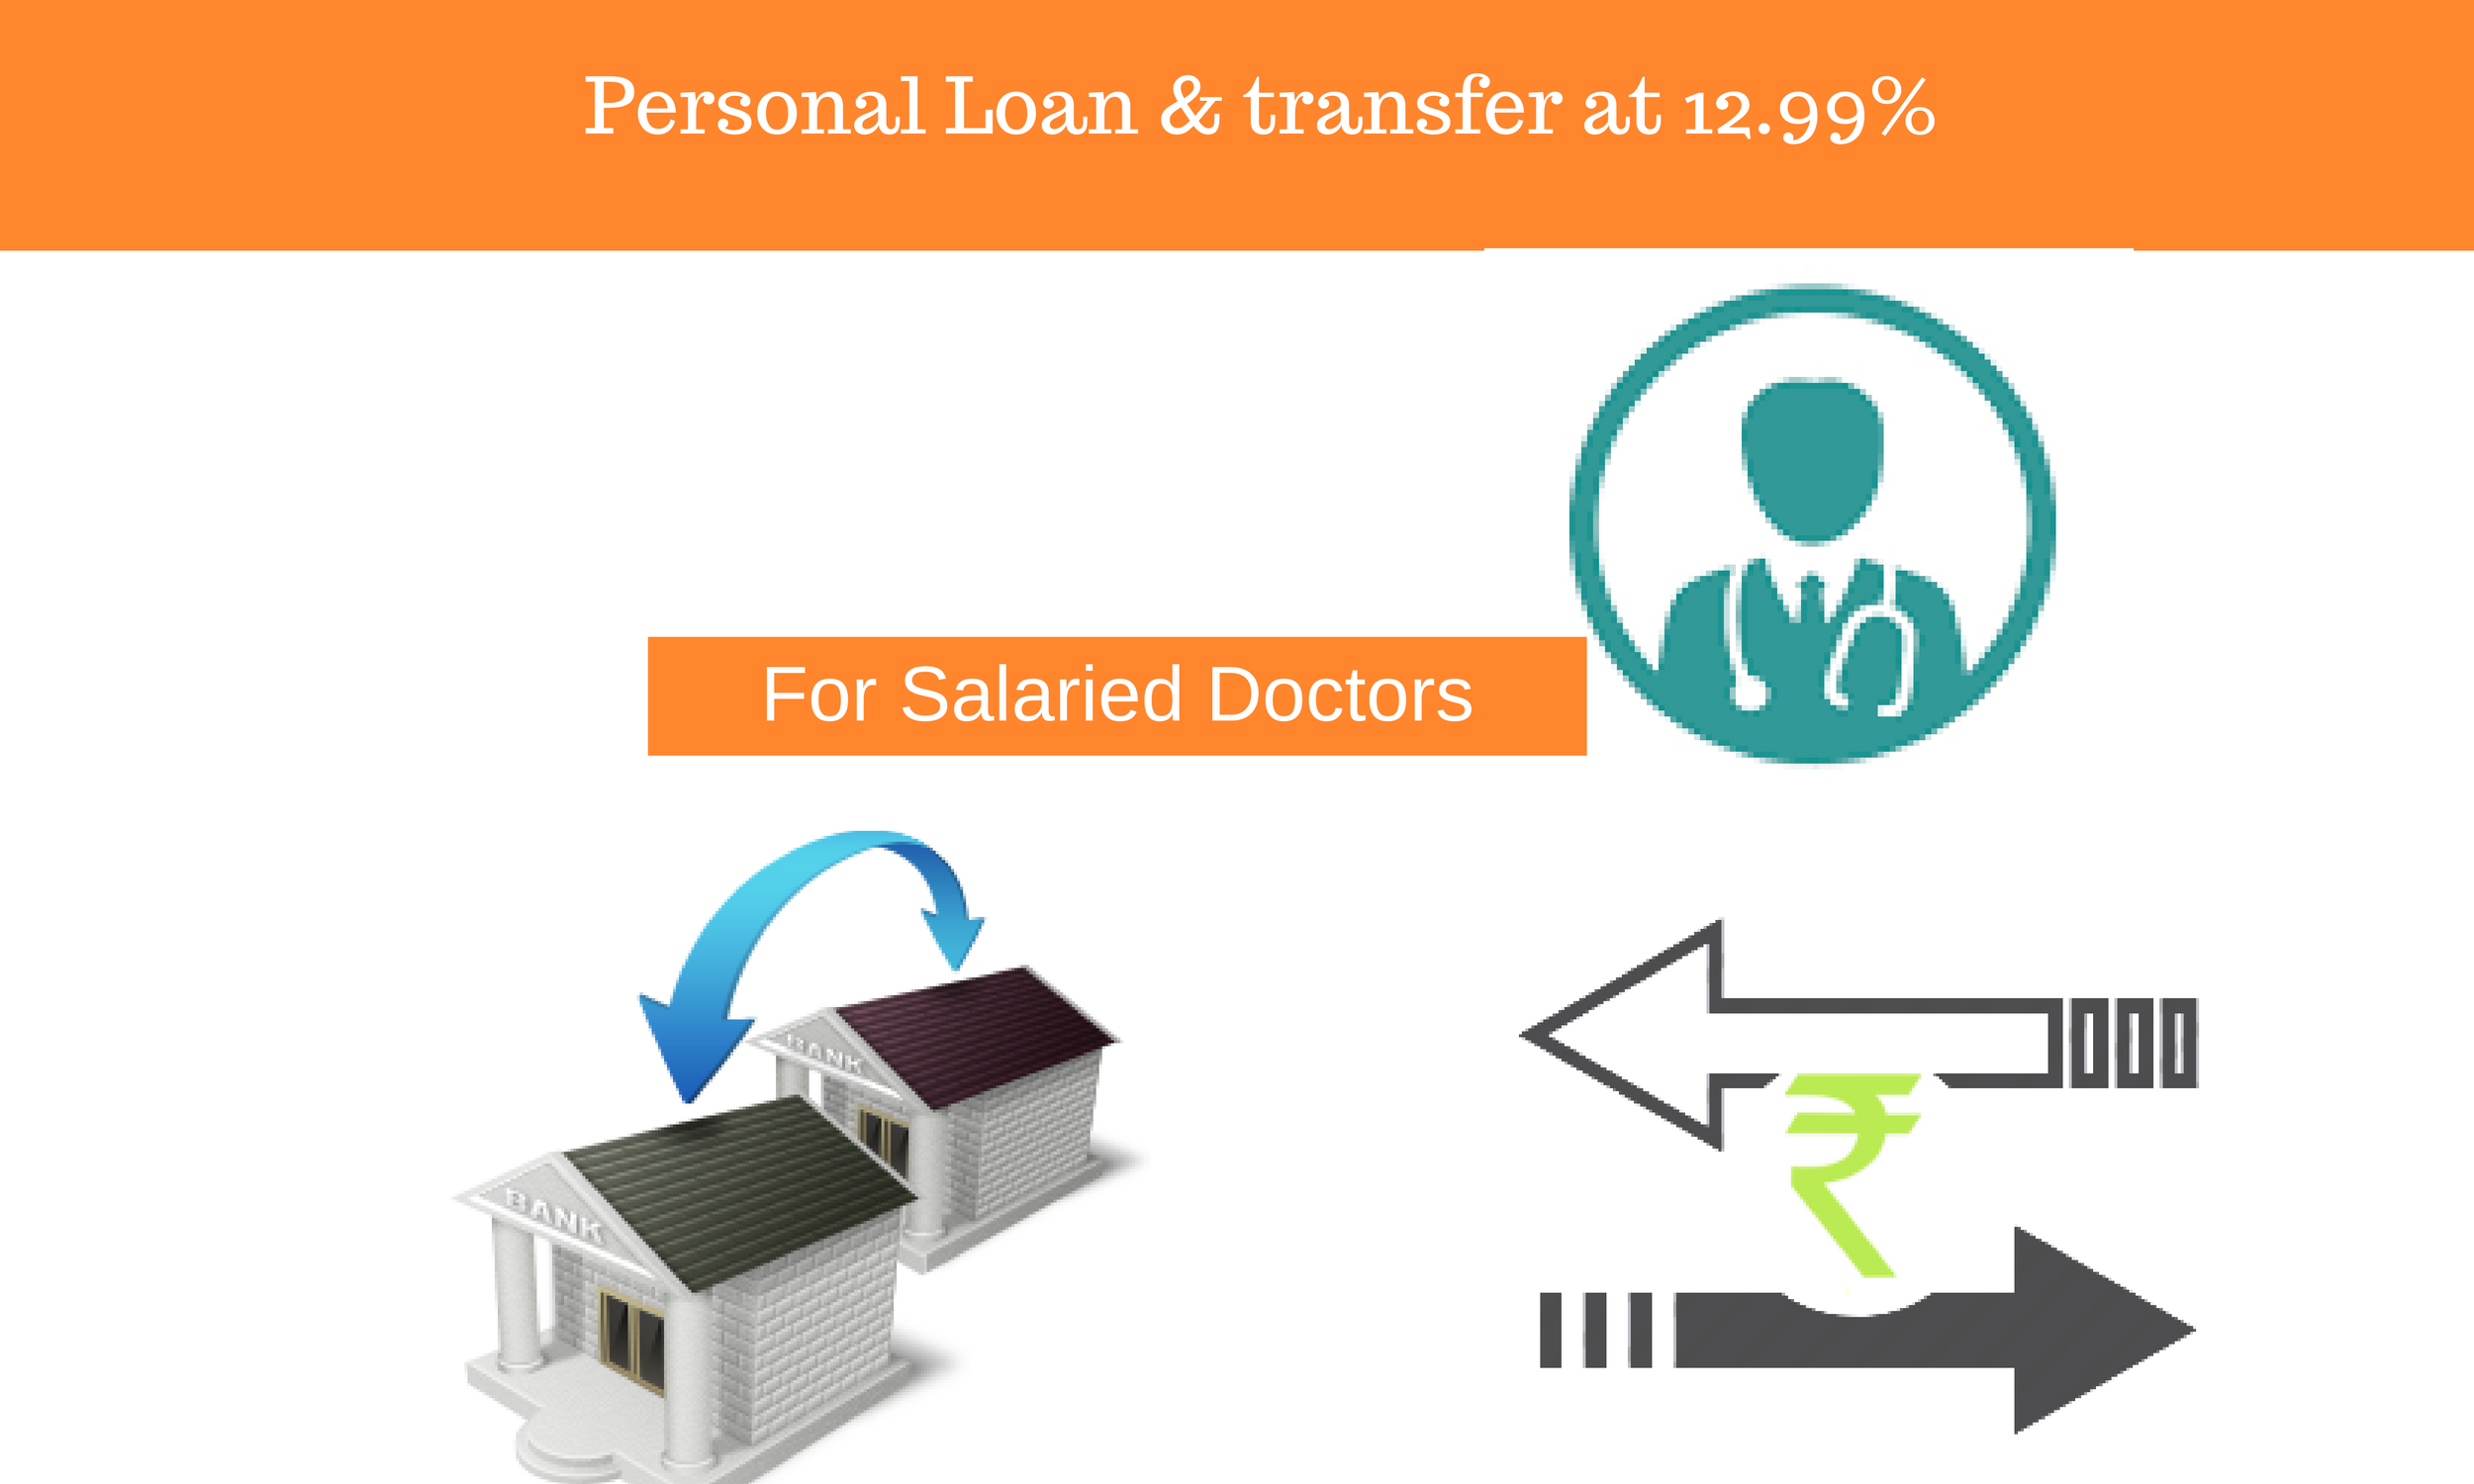 PL at 12.99% for Salaried Doctors